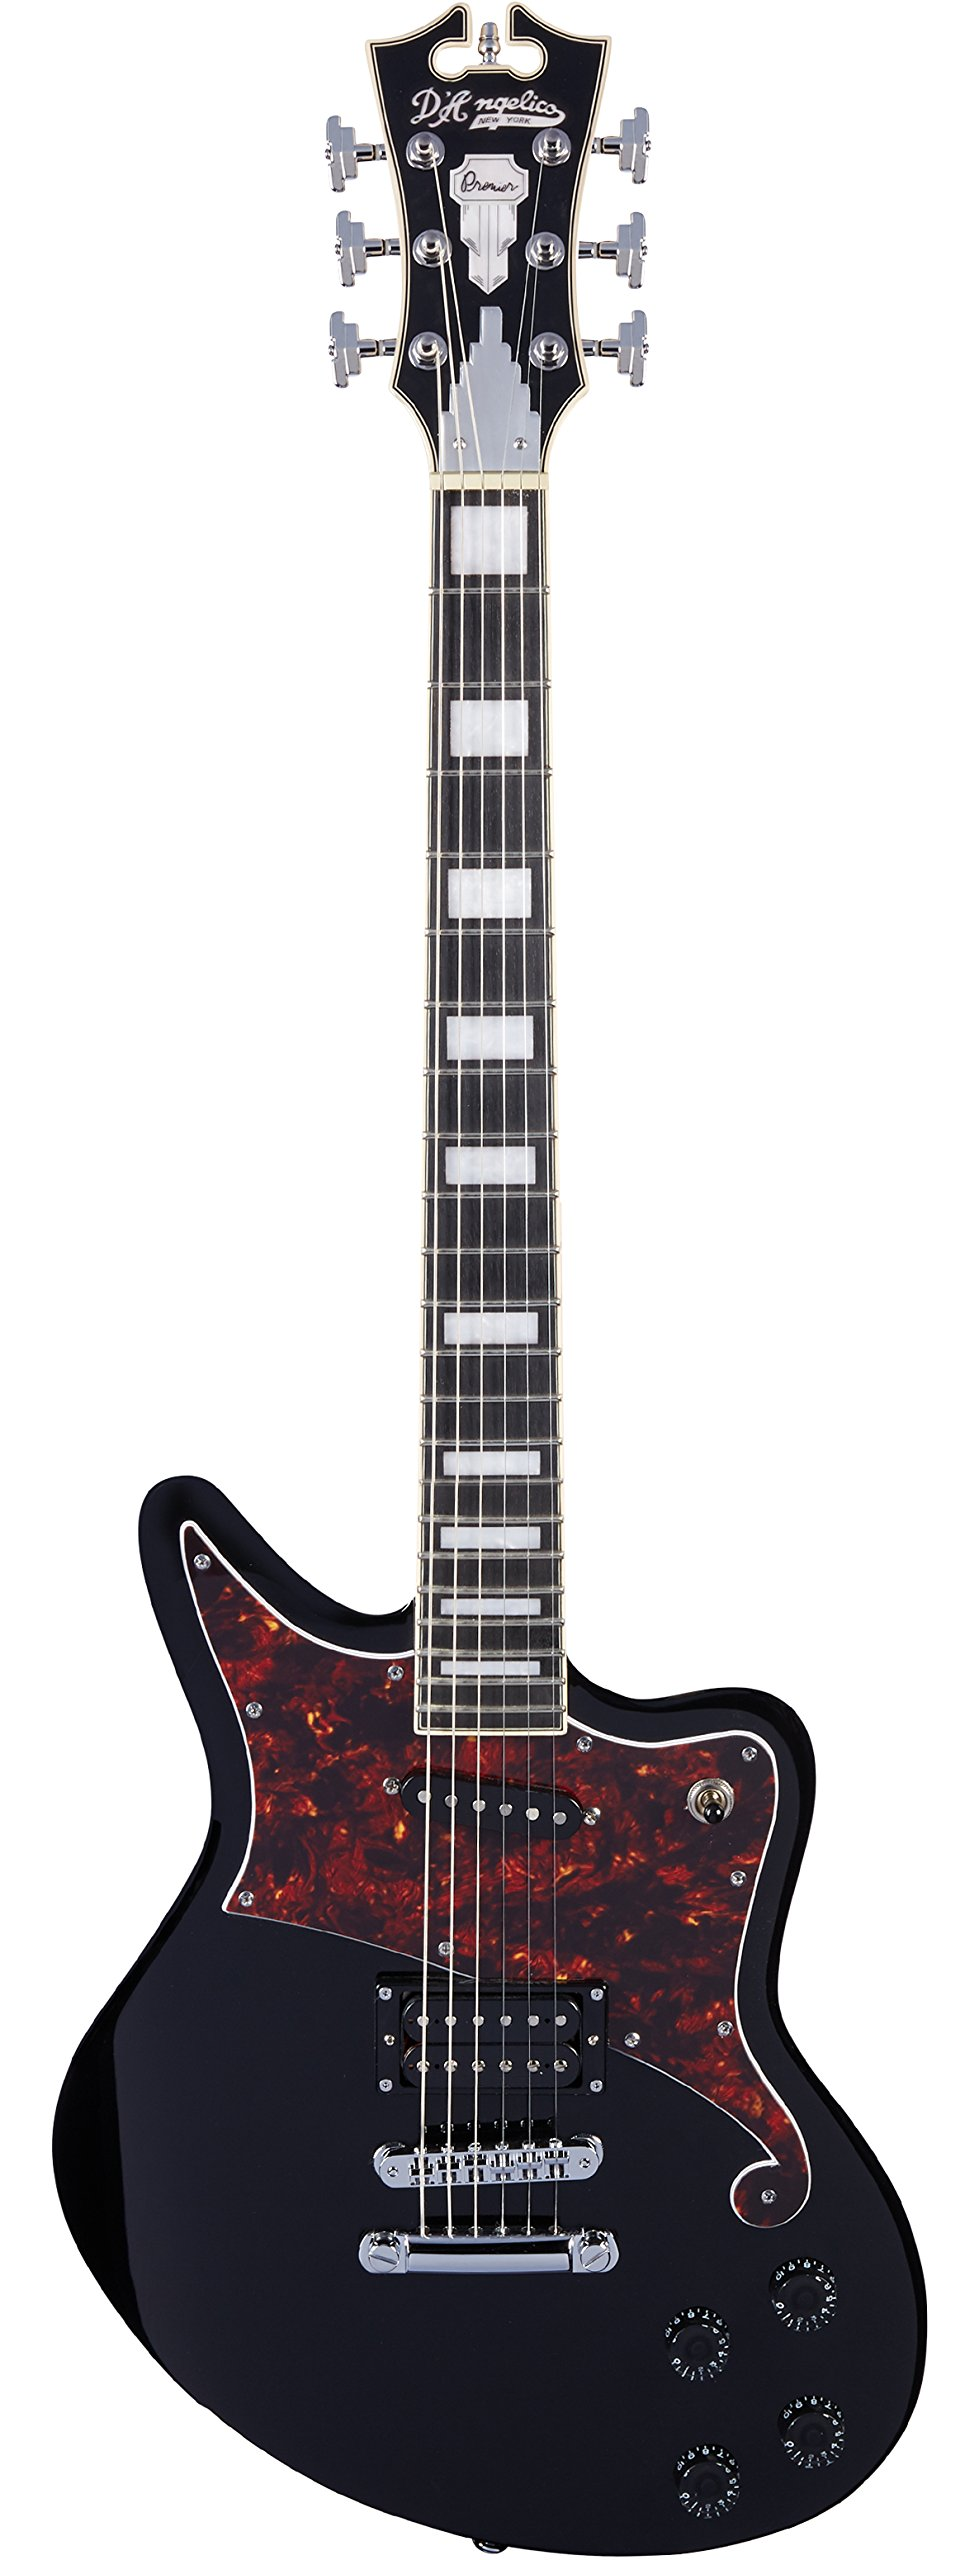 Cheap D Angelico Premier Bedford Electric Guitar - Black Black Friday & Cyber Monday 2019